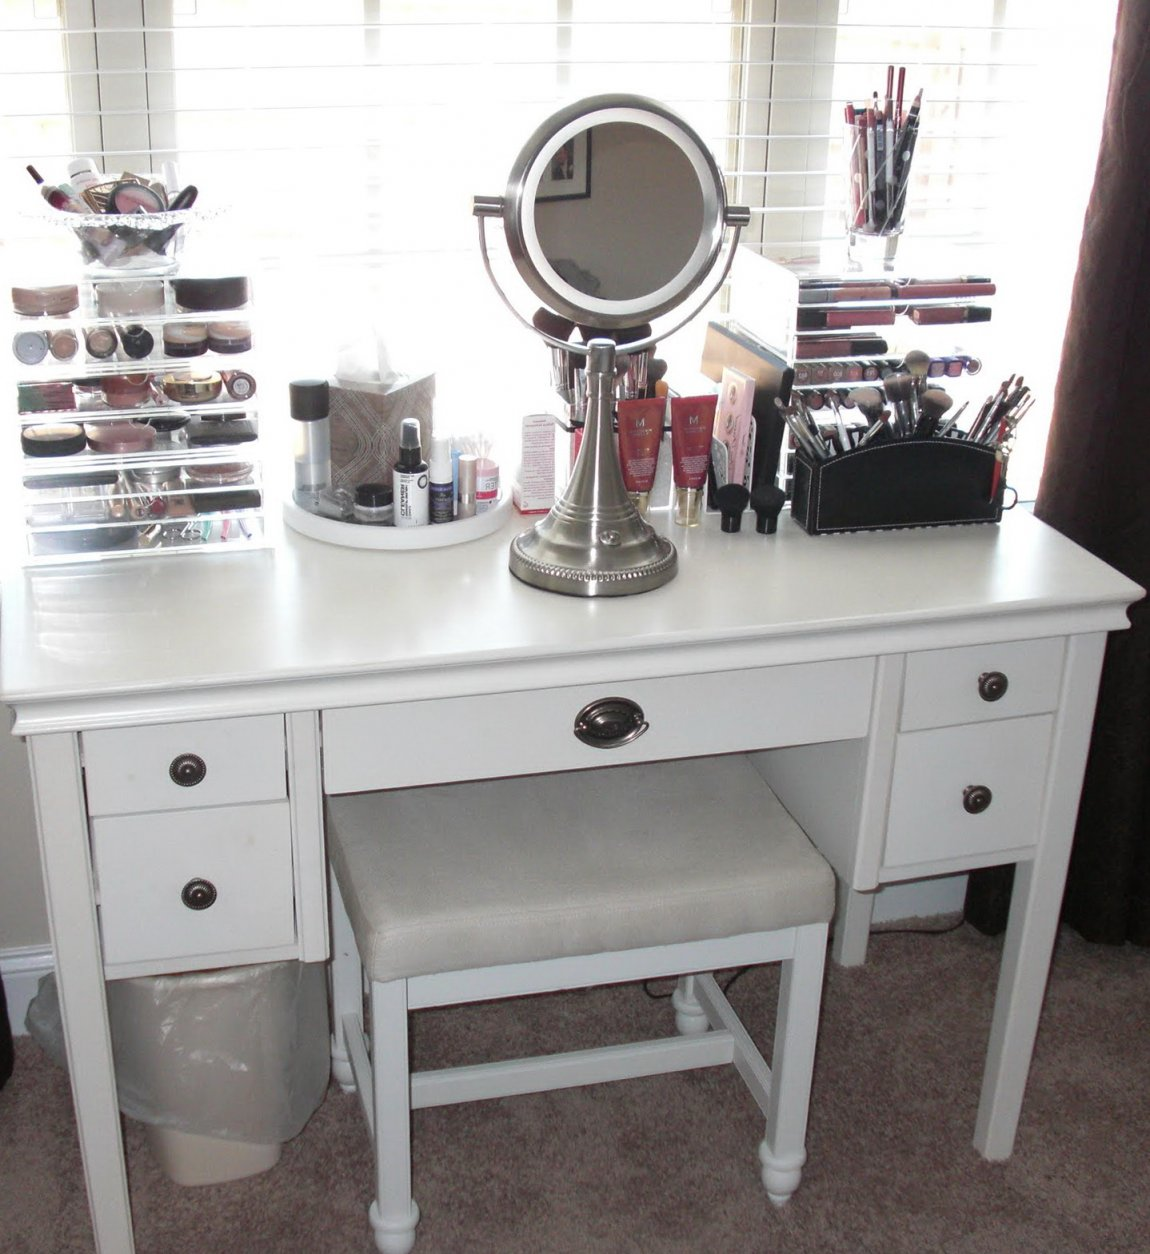 Bedroom Vanity Set with Lights Small